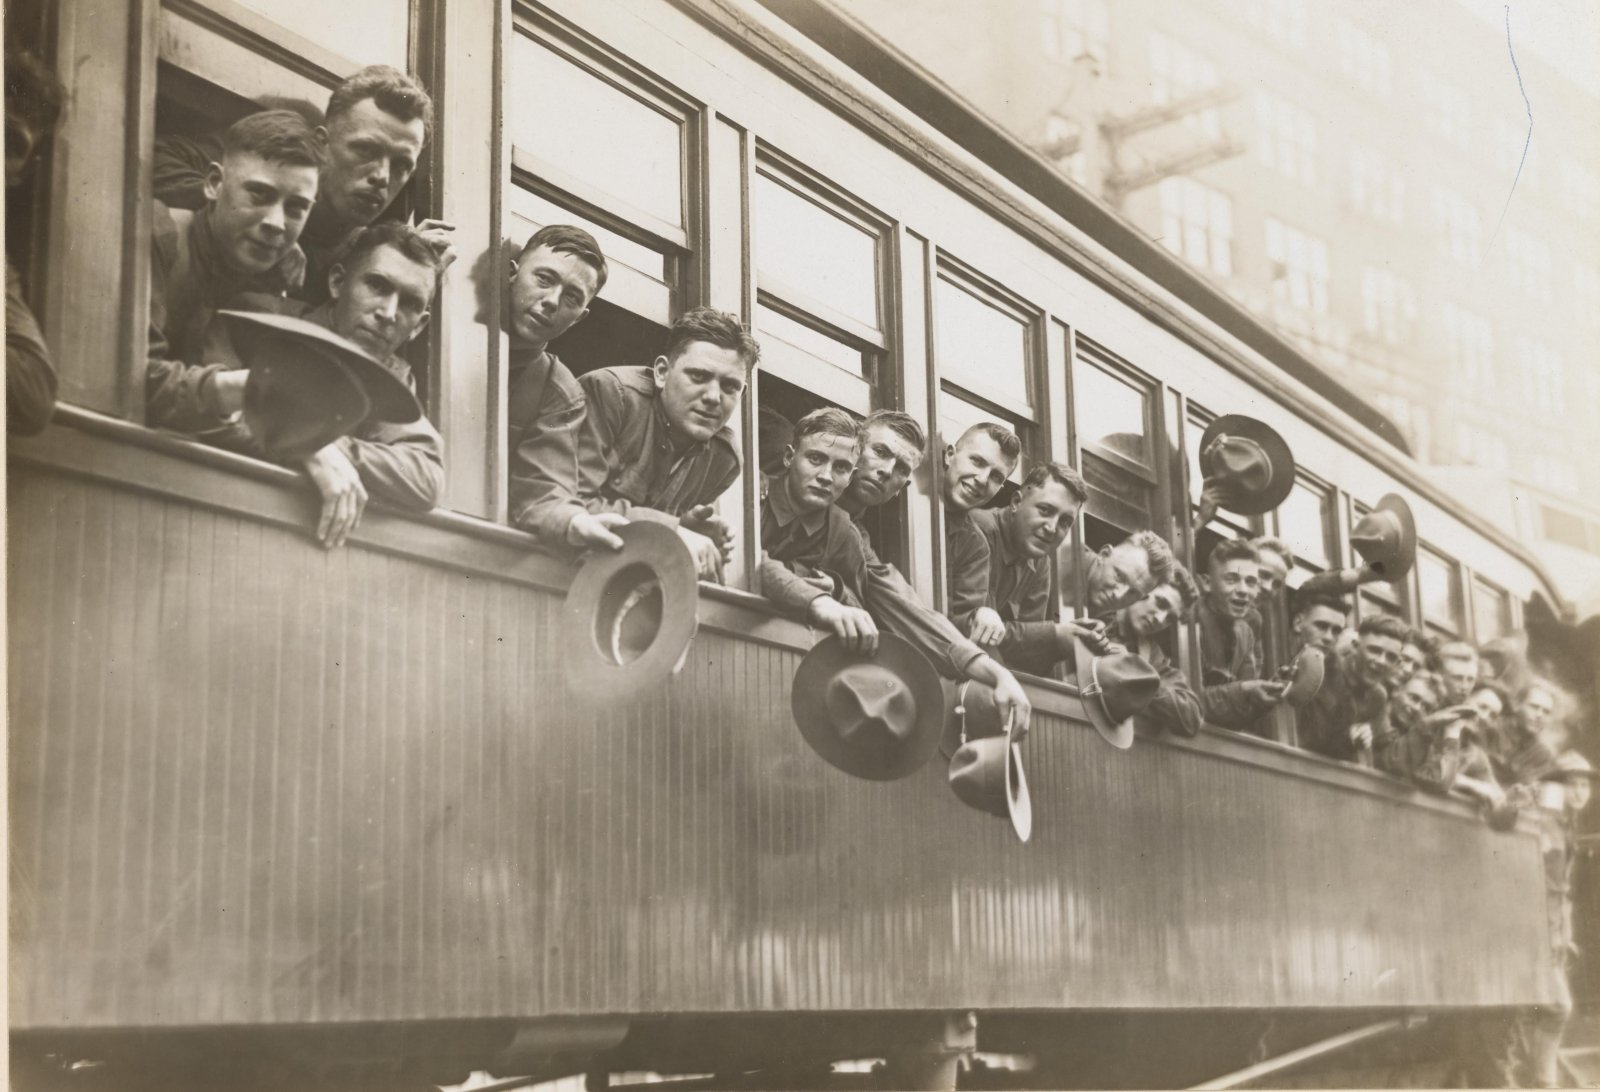 World War I soldiers black and white photo with their heads out the windows of a train in Cincinatti, Ohio waving to the unseen crowd at the train station